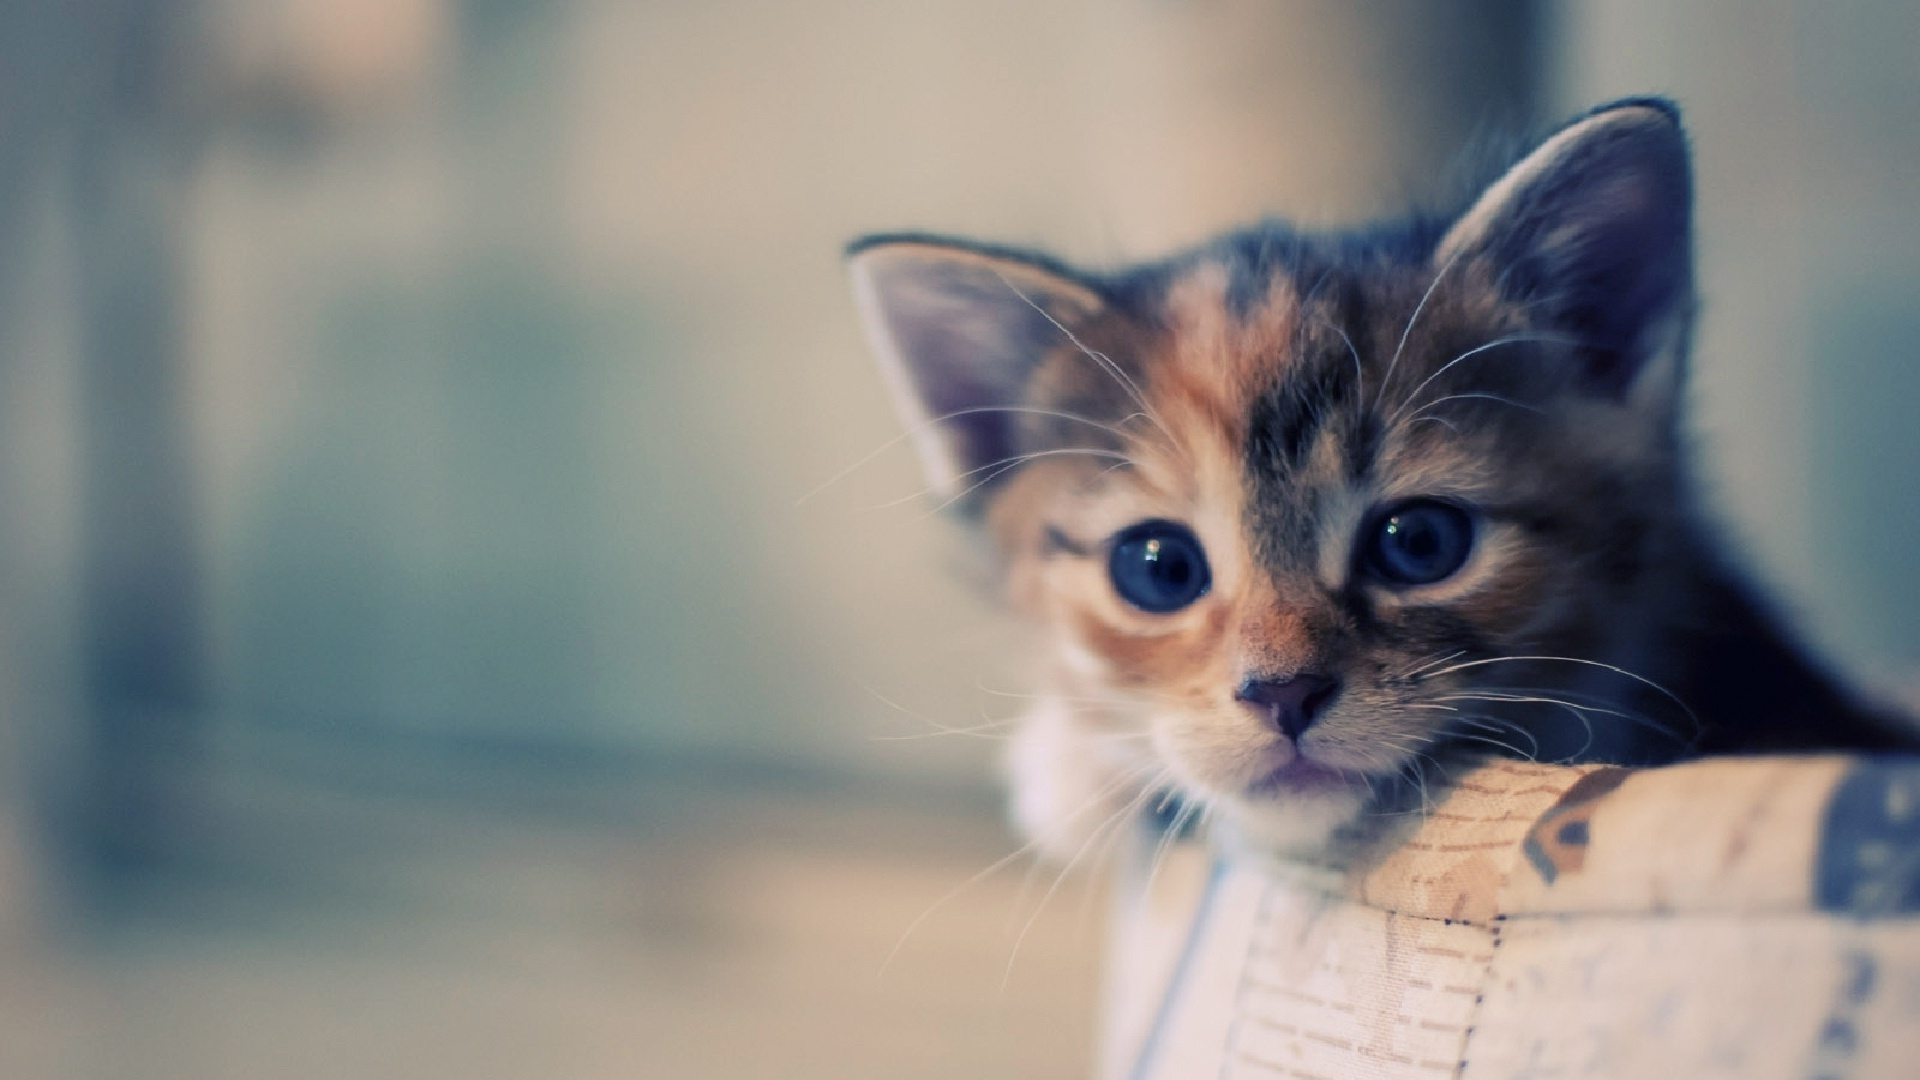 1920x1080 Cute Cat desktop wallpapers and stock photos 1920x1080